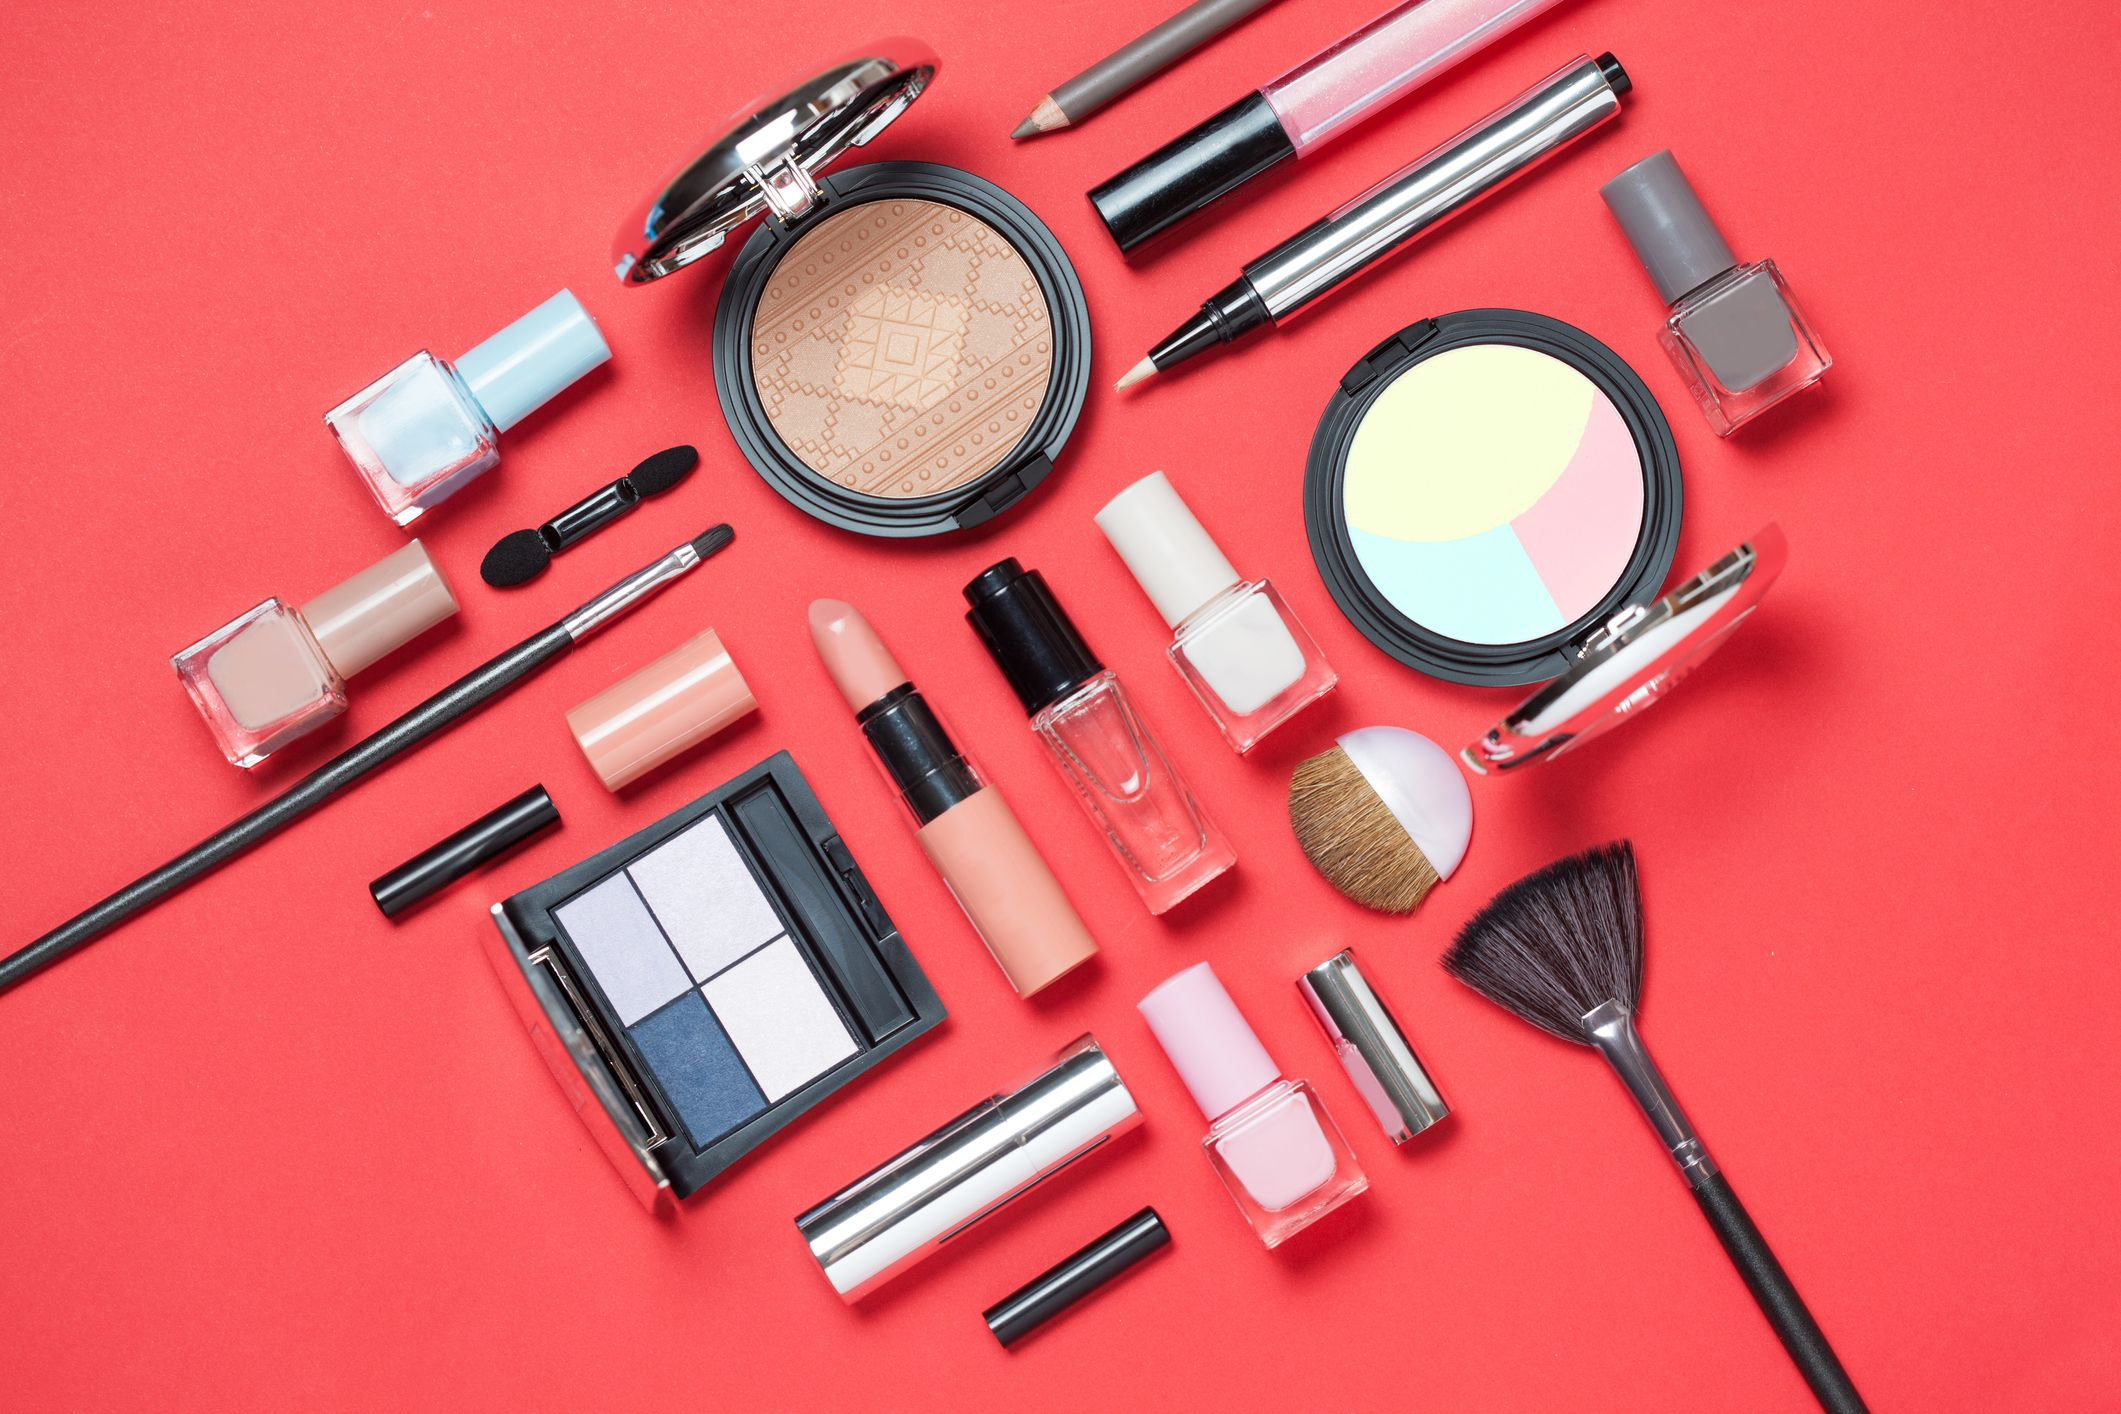 Best Drugstore Makeup 2020 - Budget